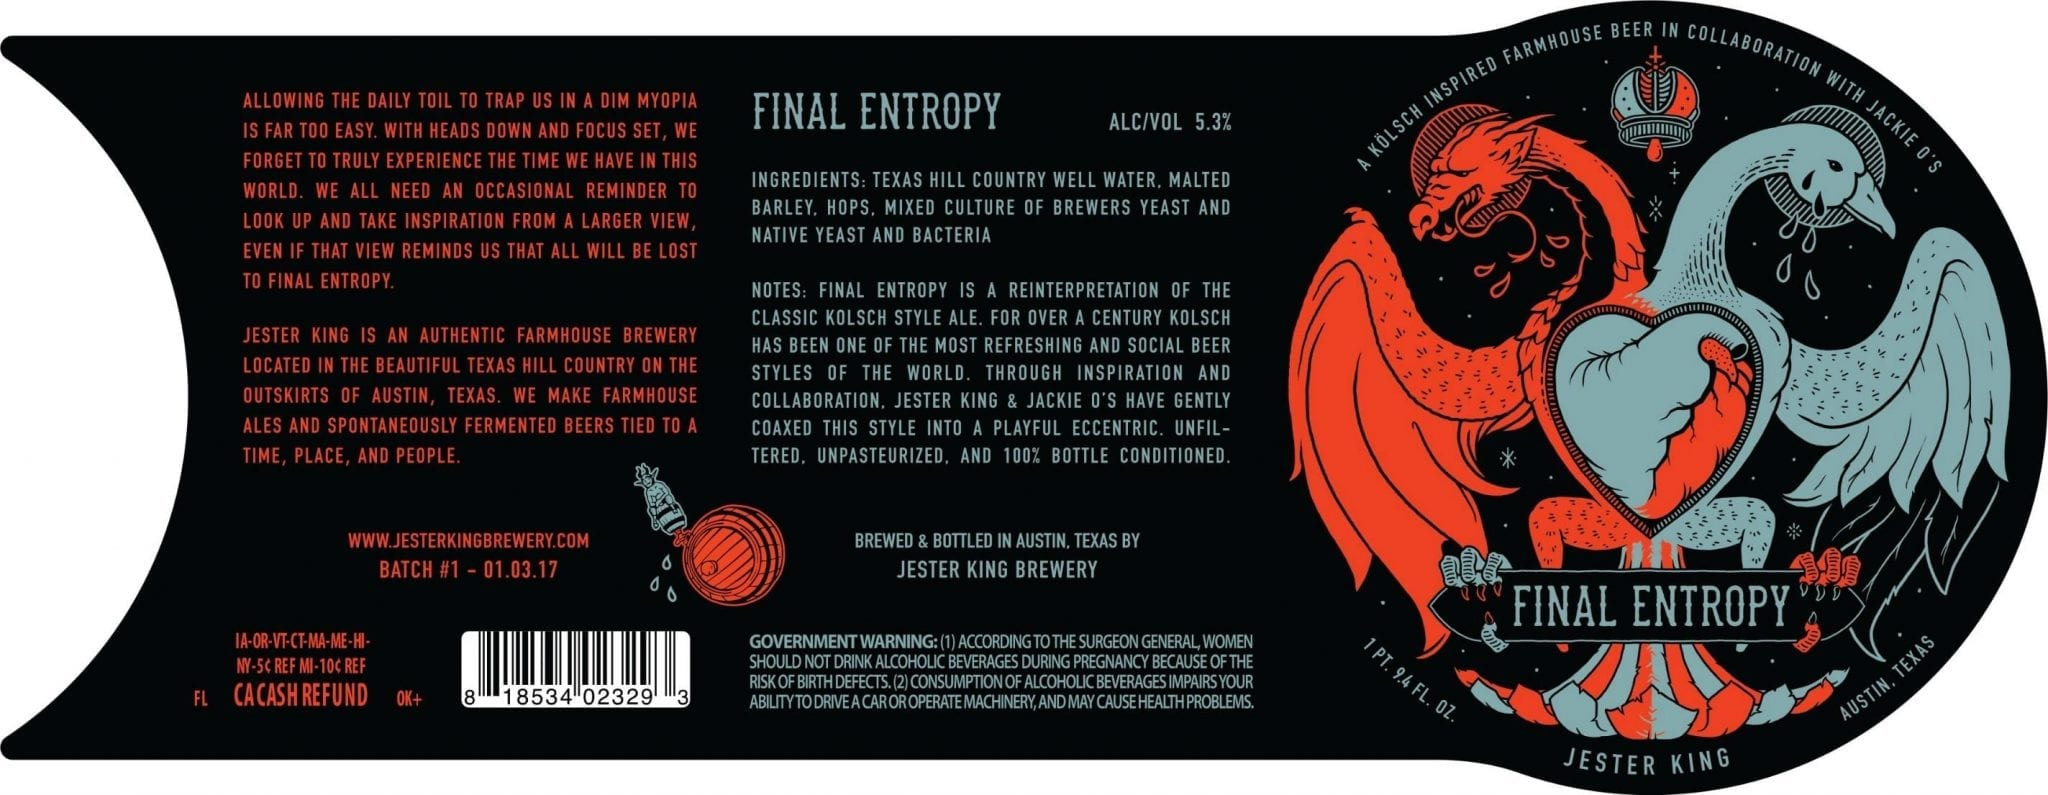 Jester King Final Entropy Label